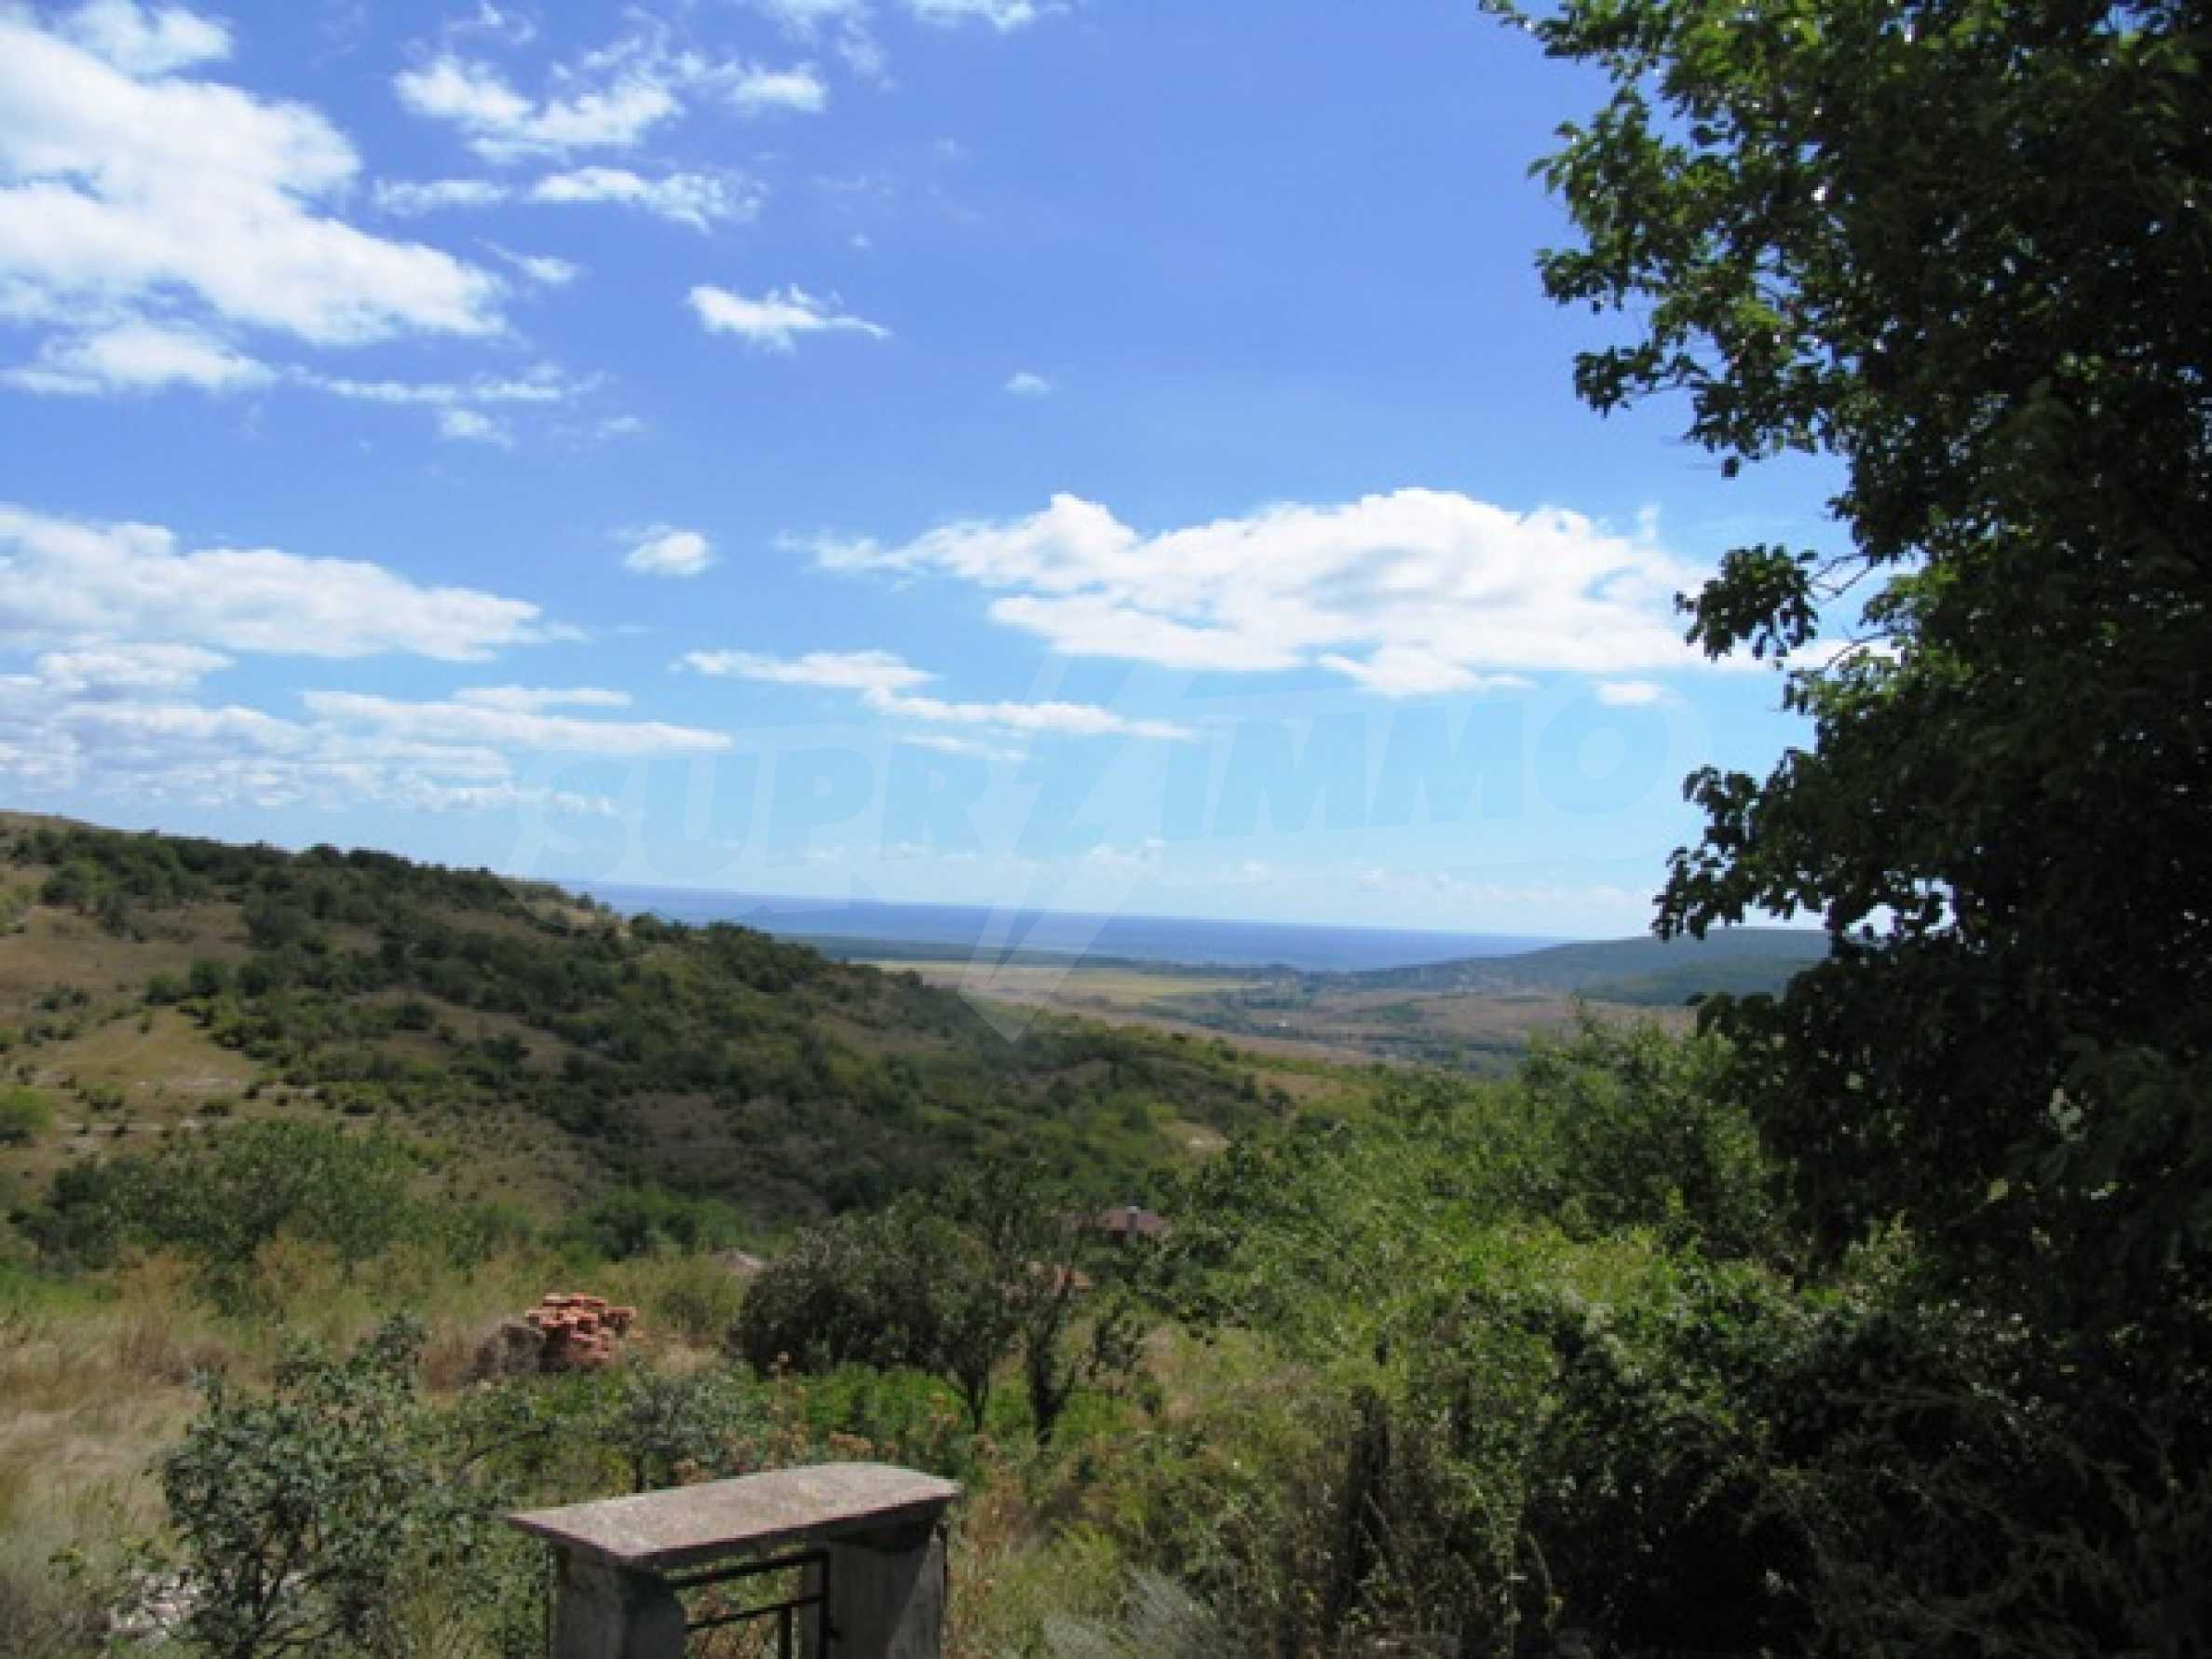 Excellent offer: plot of regulated land at a reasonable price and amazing sea view 2